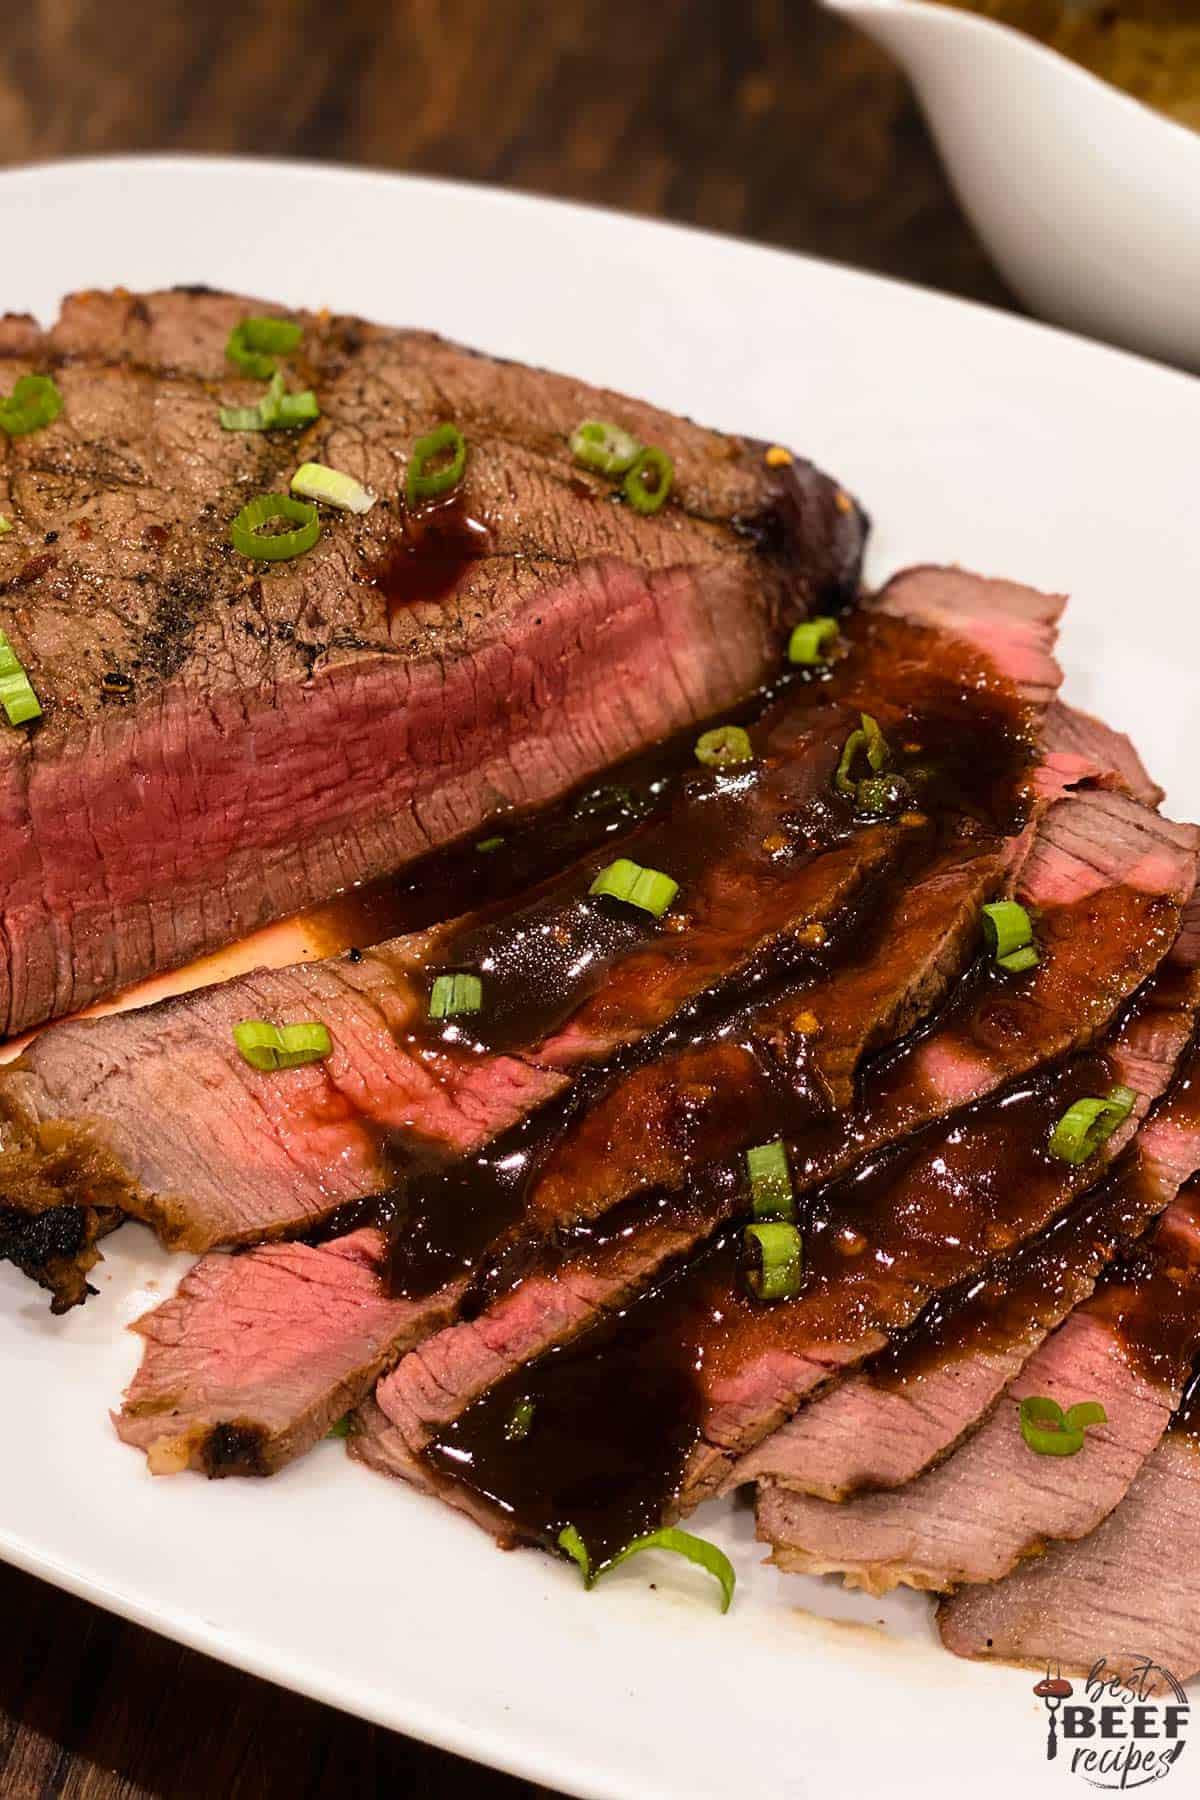 Slices of grilled london broil topped with sauce and green onions on a white platter